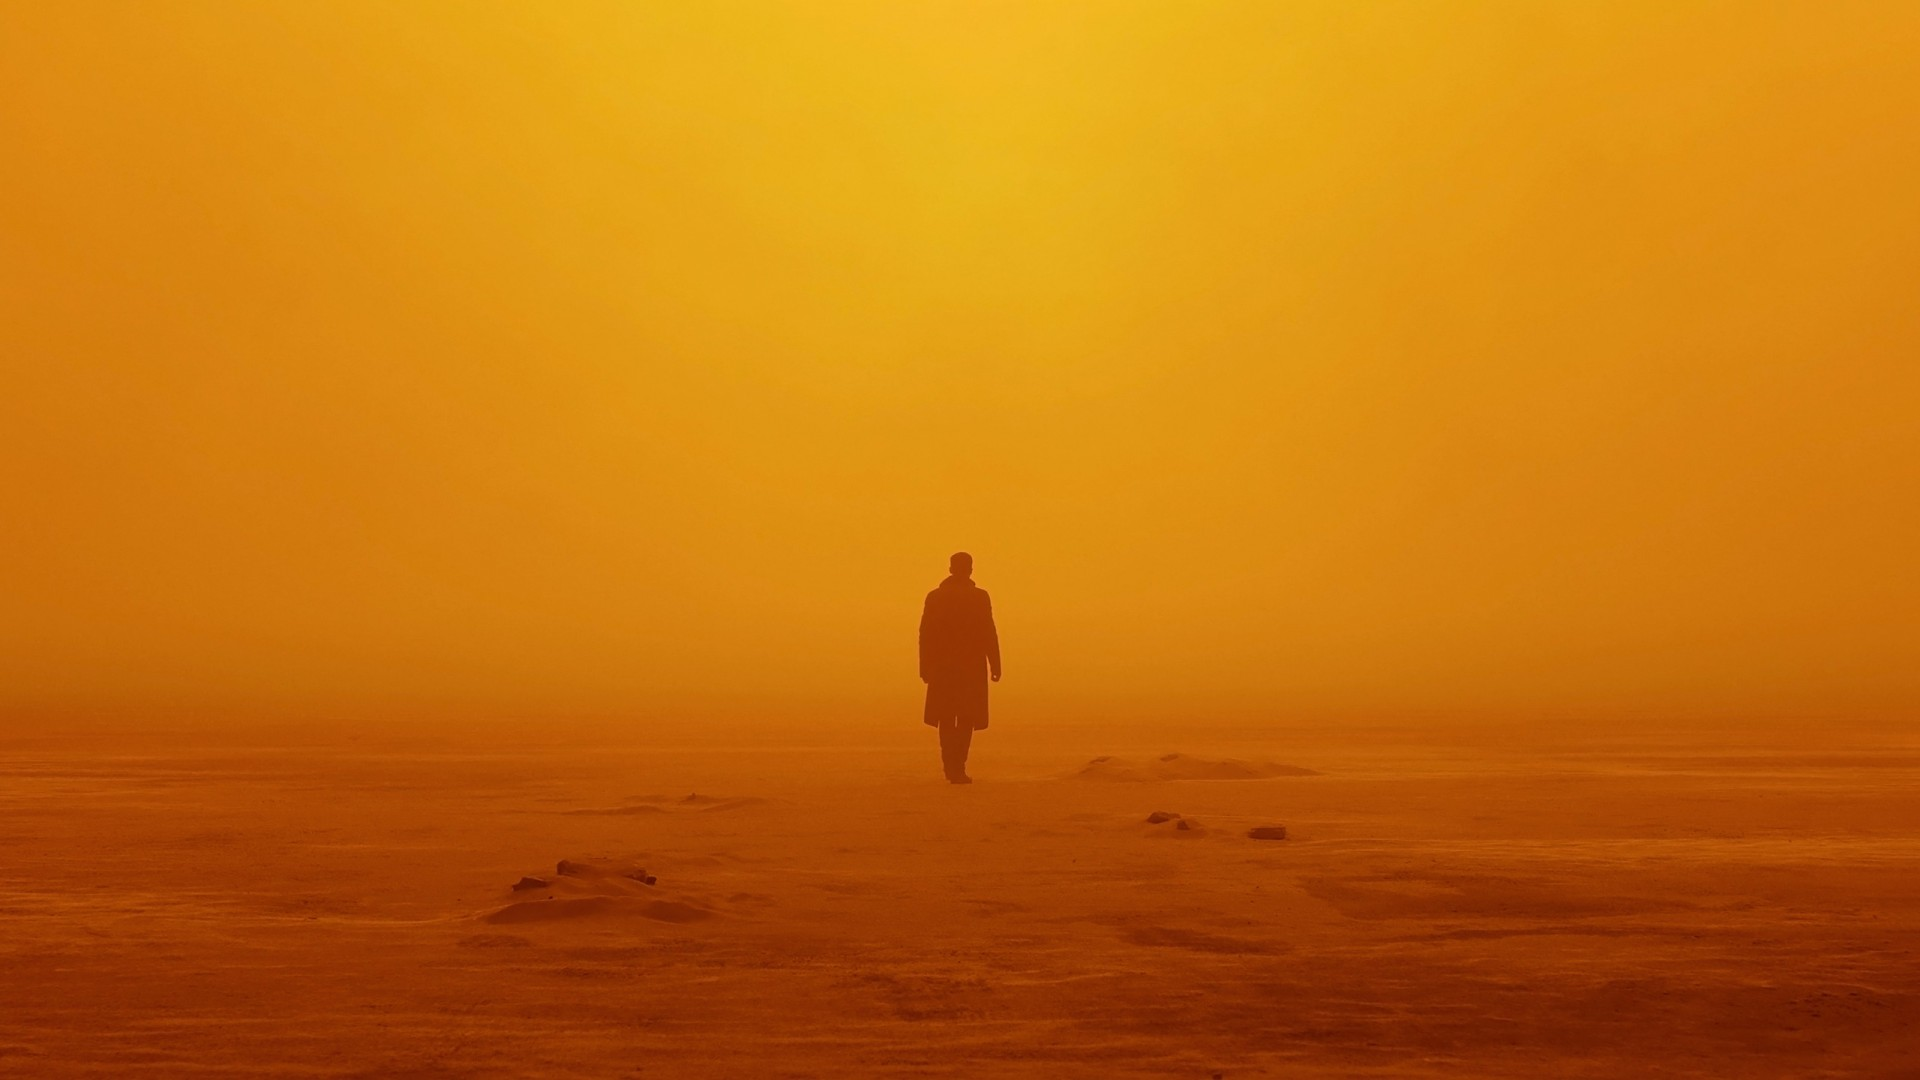 Full Hd 3d Wallpapers 1920x1080 Download Officer K Blade Runner 2049 Wallpapers Hd Wallpapers